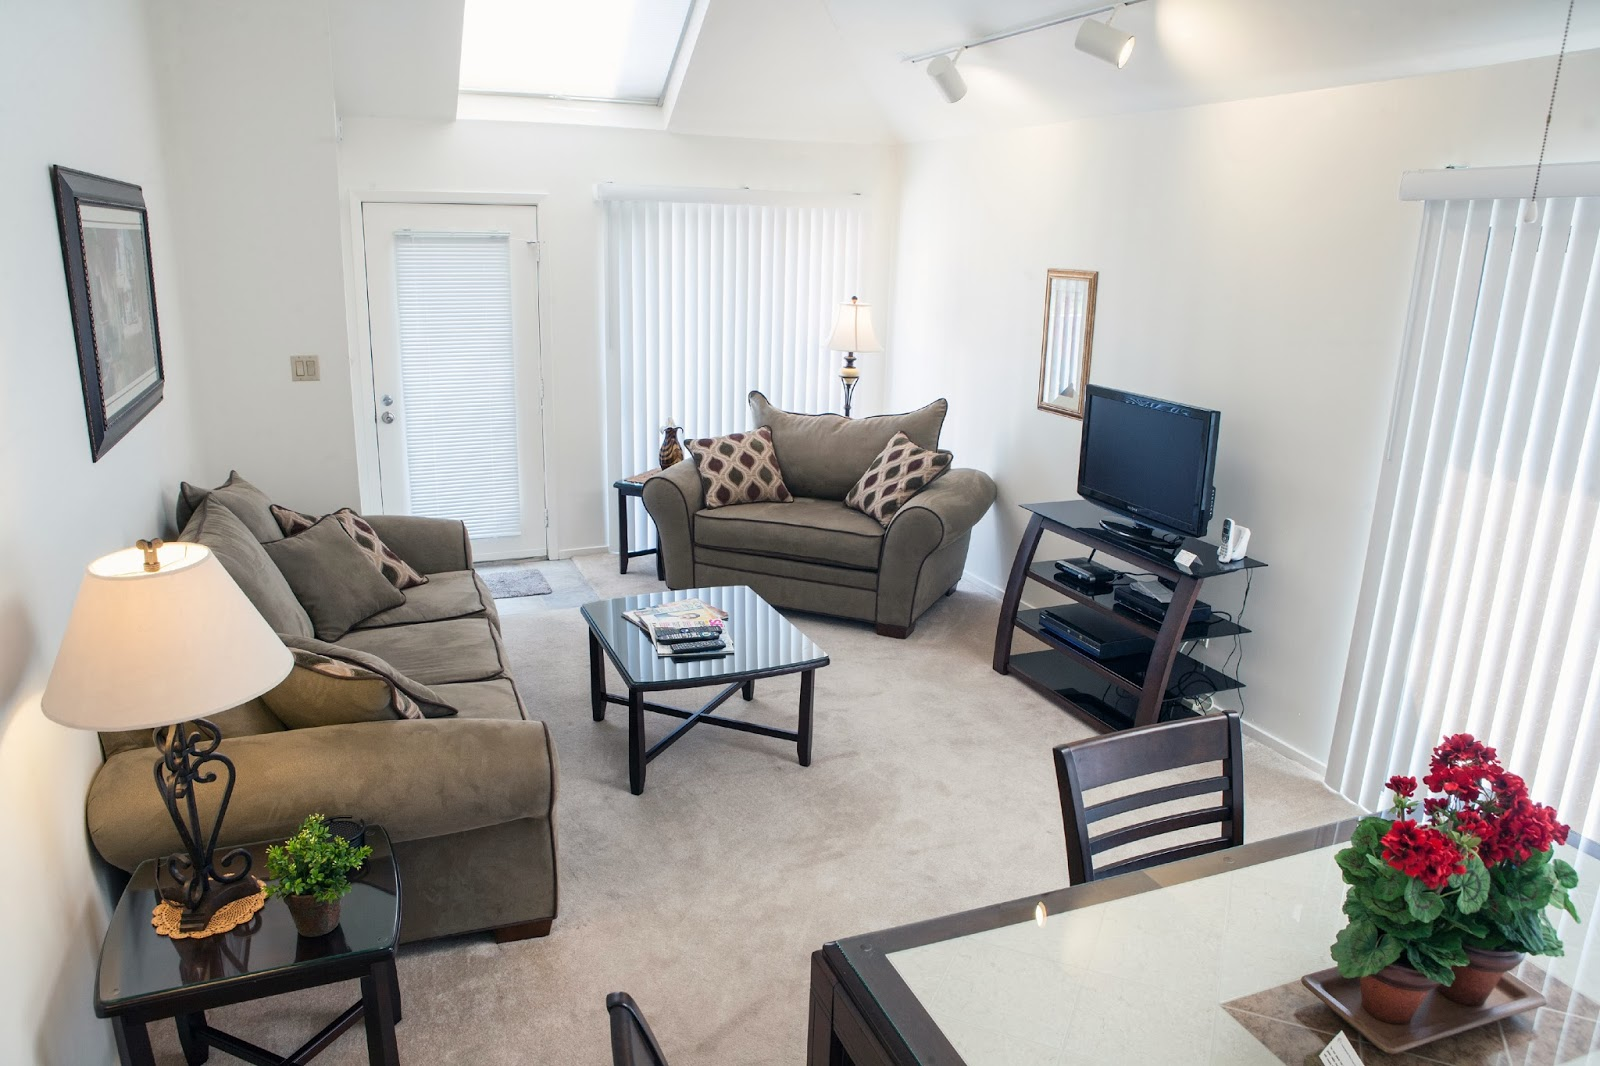 Furnished Apartments in Mechanicsburg PA